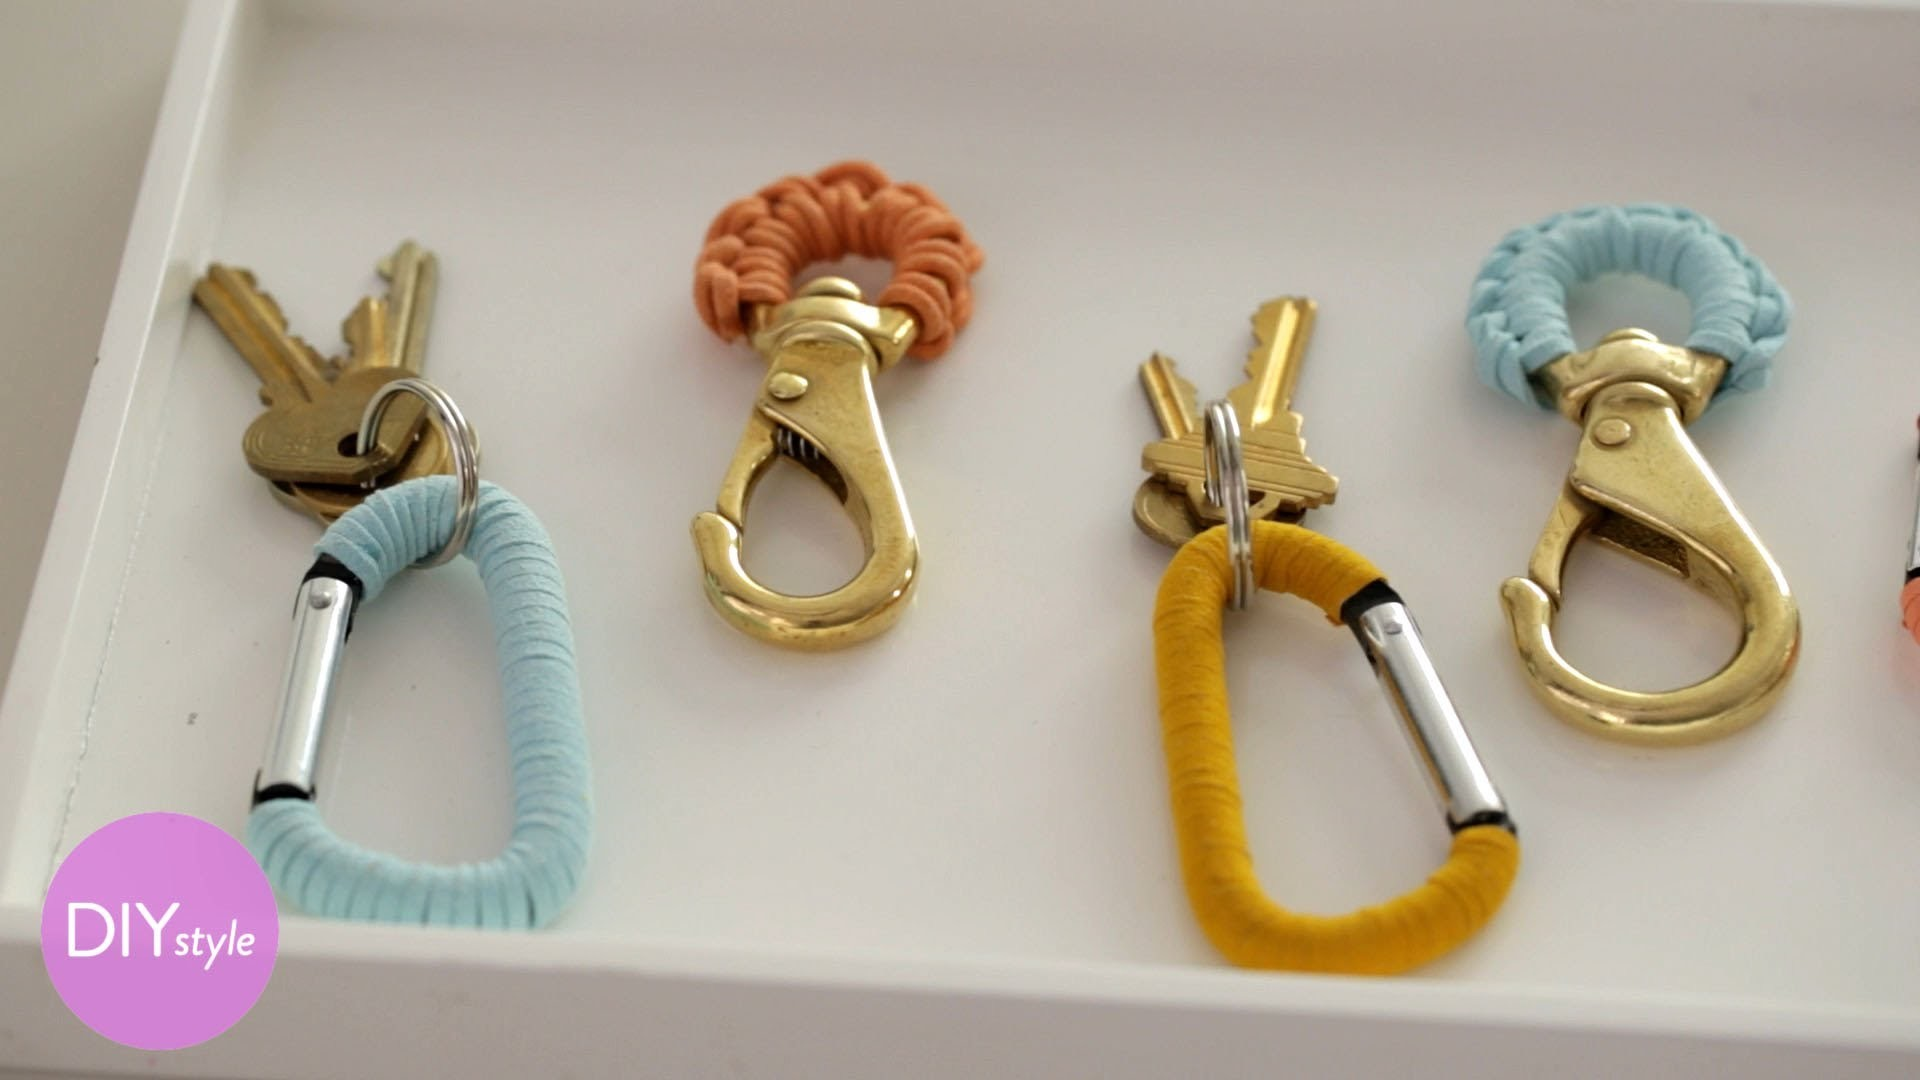 Colorful Leather-Wrapped Keychains - DIY Style - Martha Stewart